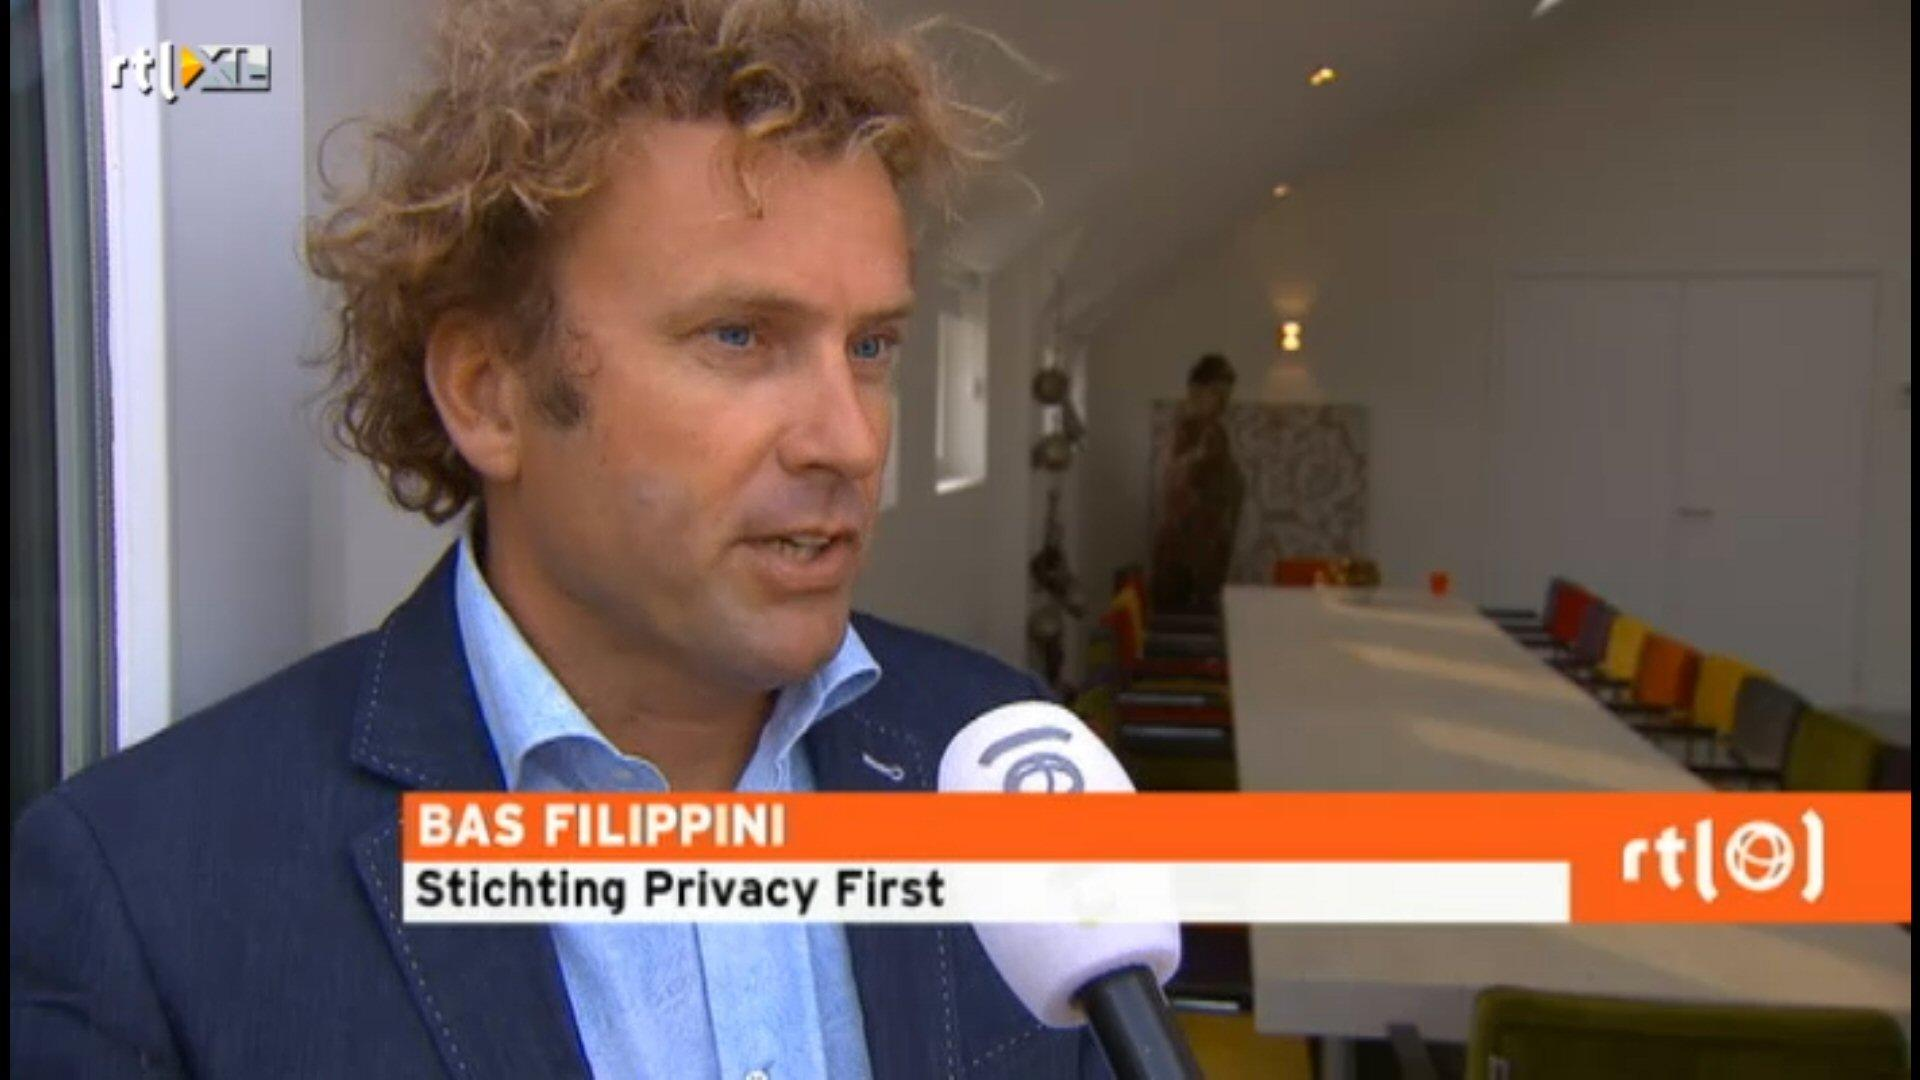 Bas Filippini in RTL Nieuws